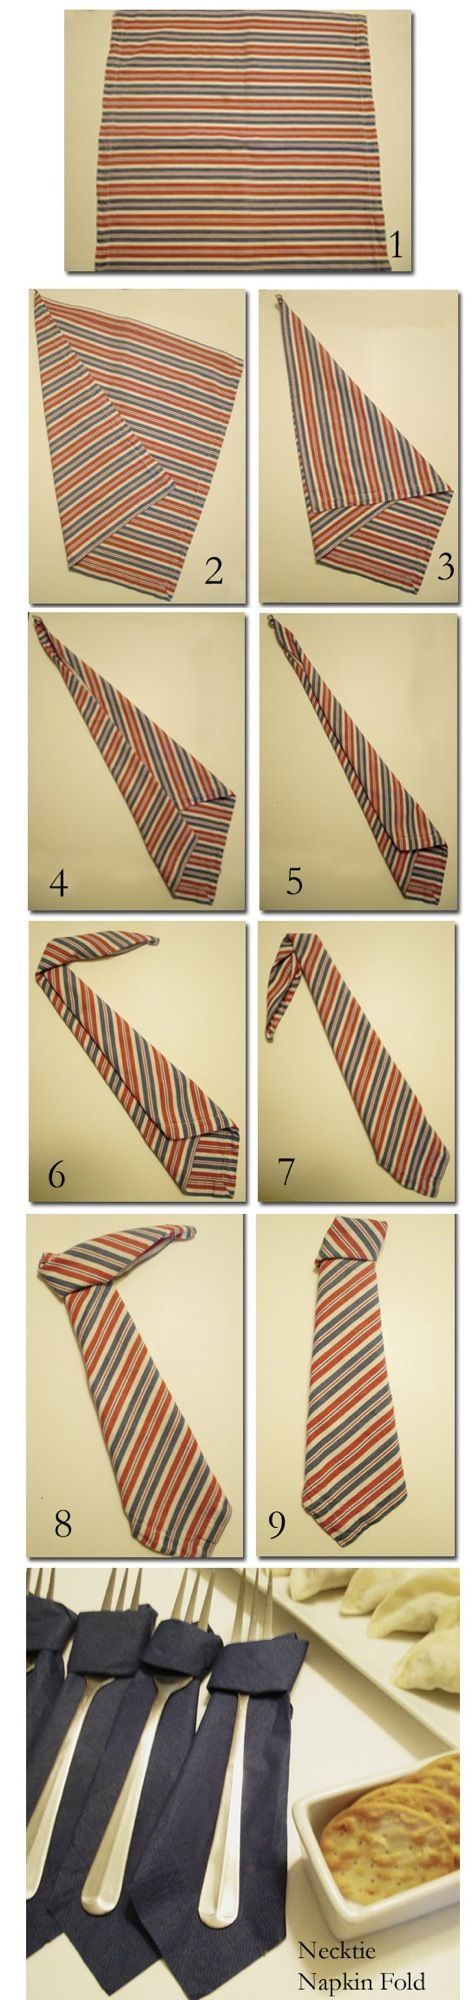 DIY Necktie Napkin Fold-try this tomorrow for Fathers Day Dinner.